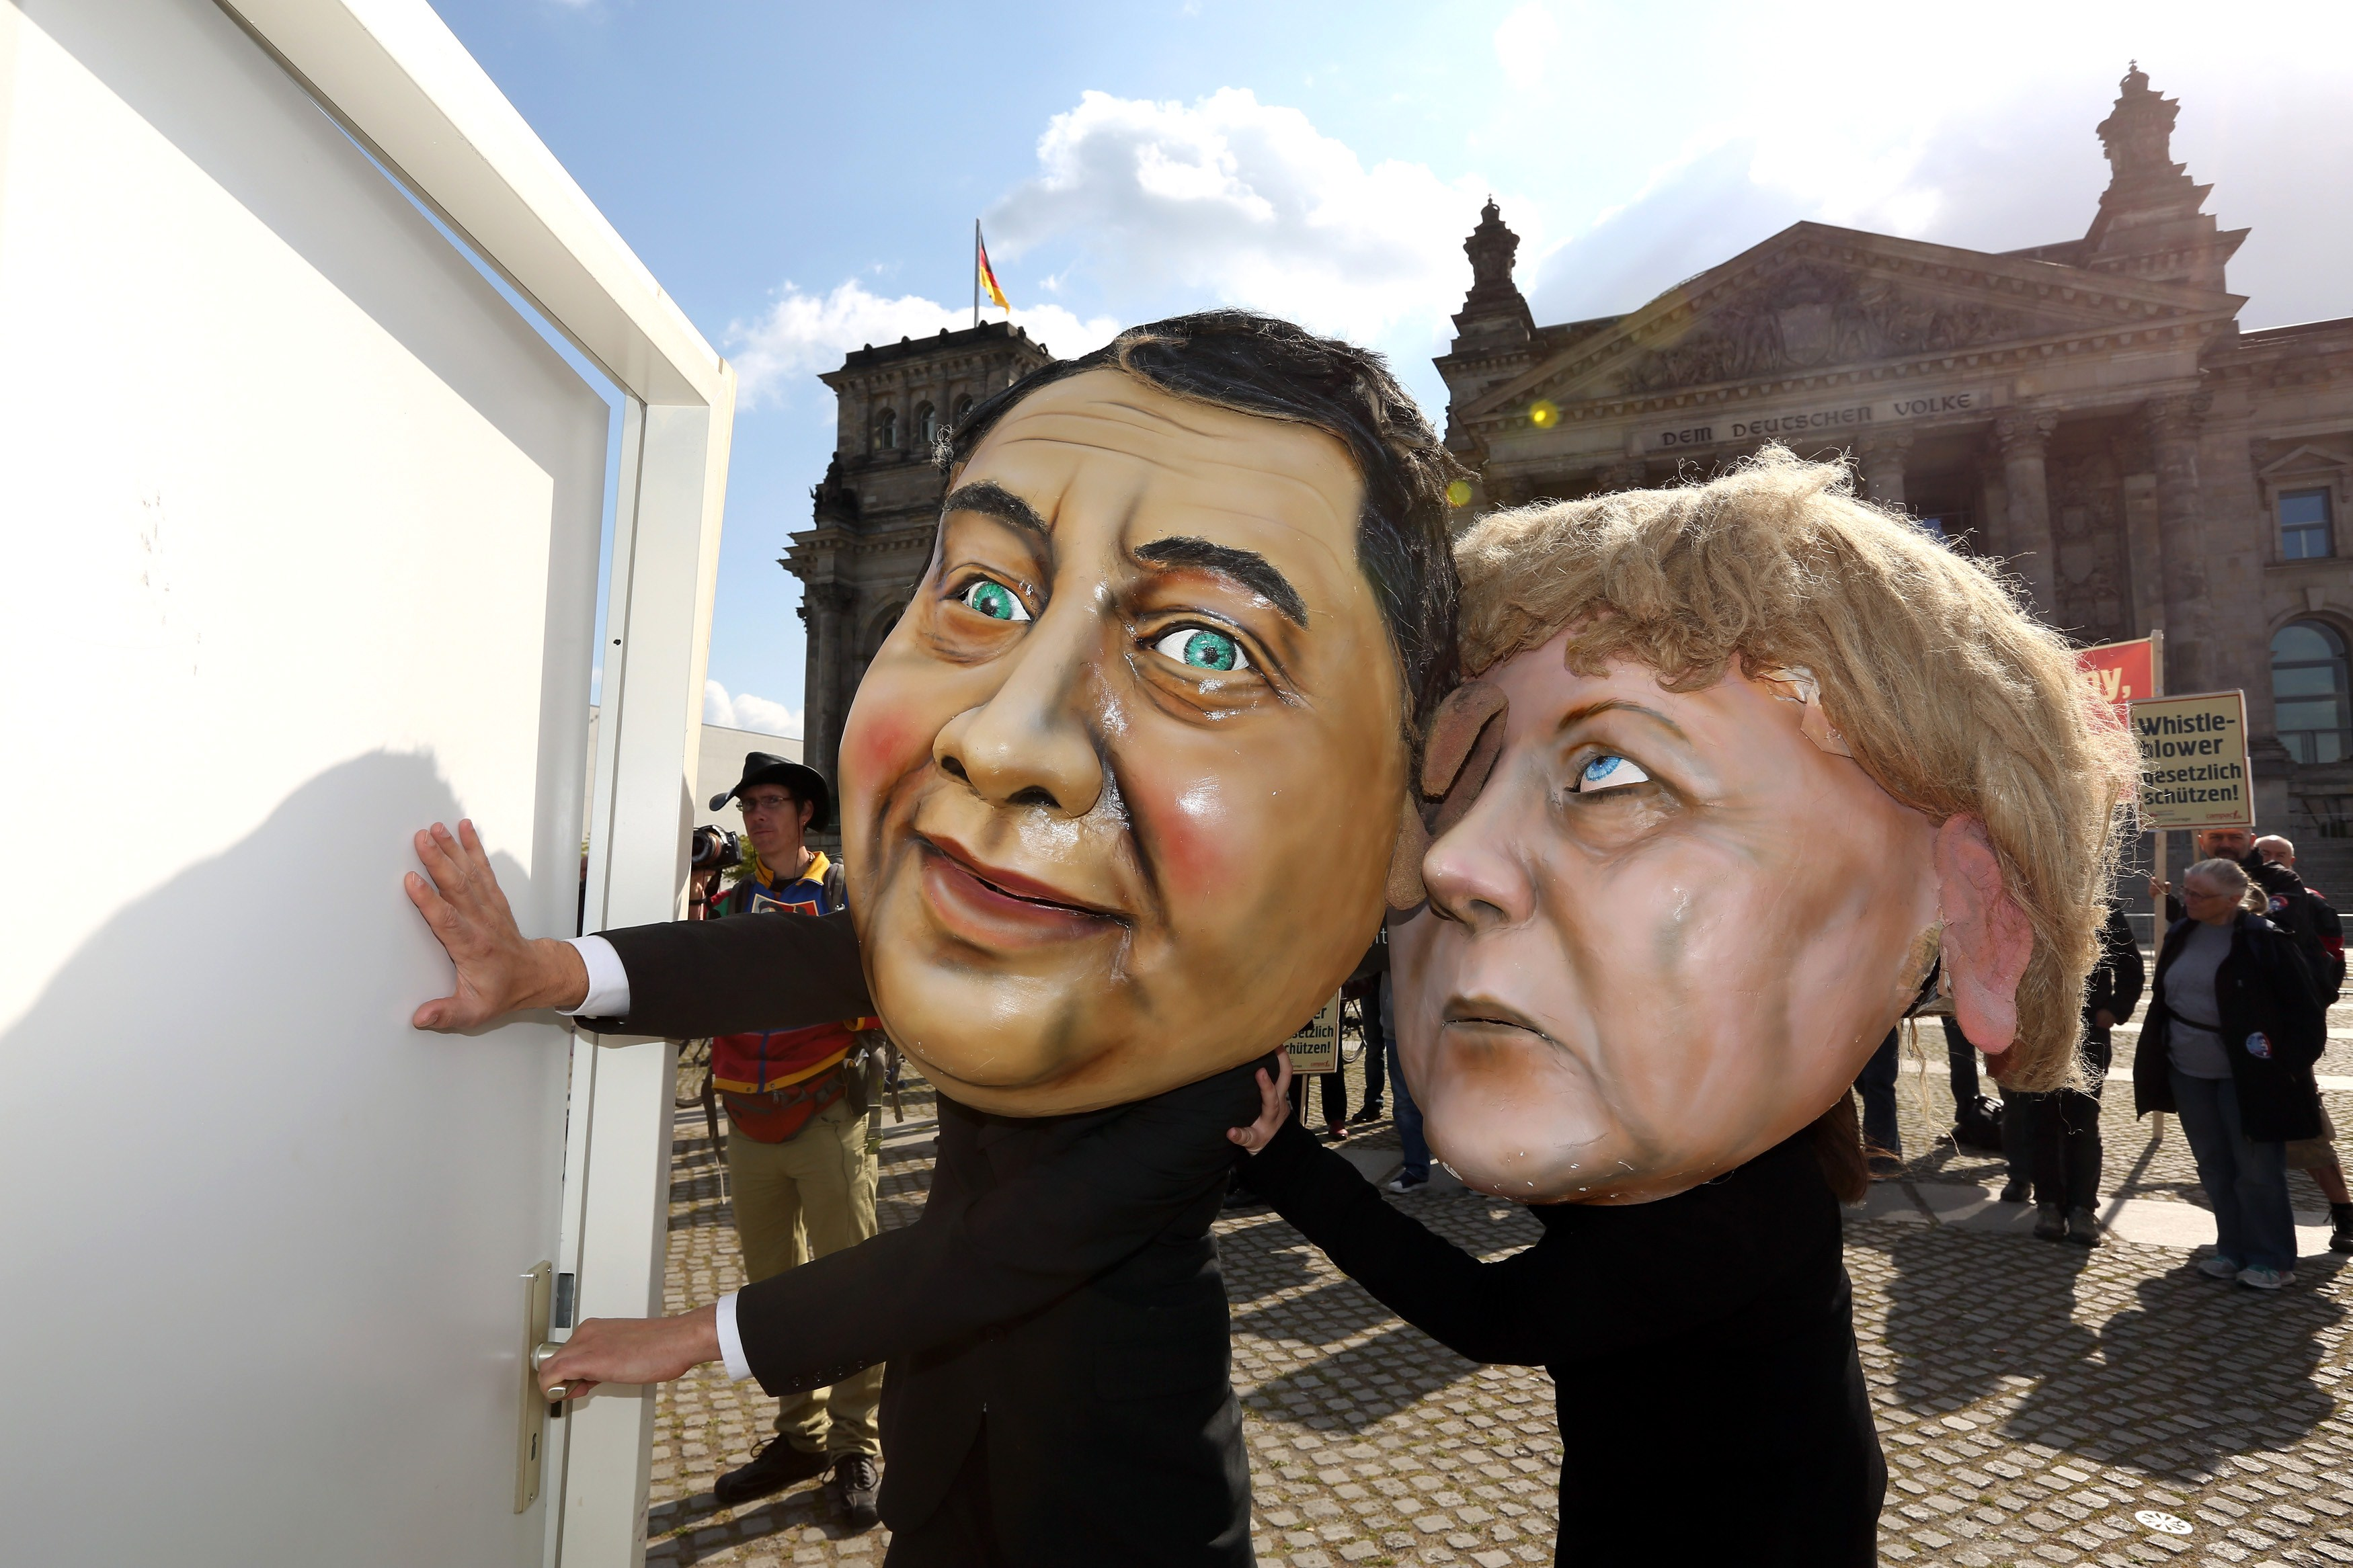 Activists wearing masks of German Chance...Activists wearing masks of German Chancellor Angela Merkel and vice chancellor and Economy and Energy Minister Sigmar Gabriel take part in a demonstration in favor of an appearance by fugitive US intelligence leaker Edward Snowden as a witness in German NSA hearings held in the German Bundestag, or lower house of parliament, outside the Reichstag building in Berlin on May 8, 2014. Lawmakers from the opposition Greens and far-left Linke parties had demanded that the parliamentary panel probing mass surveillance by the NSA seek testimony from Snowden, the former contractor with the US National Security Agency (NSA) now living in Moscow.       AFP PHOTO / ADAM BERRYADAM BERRY/AFP/Getty Images